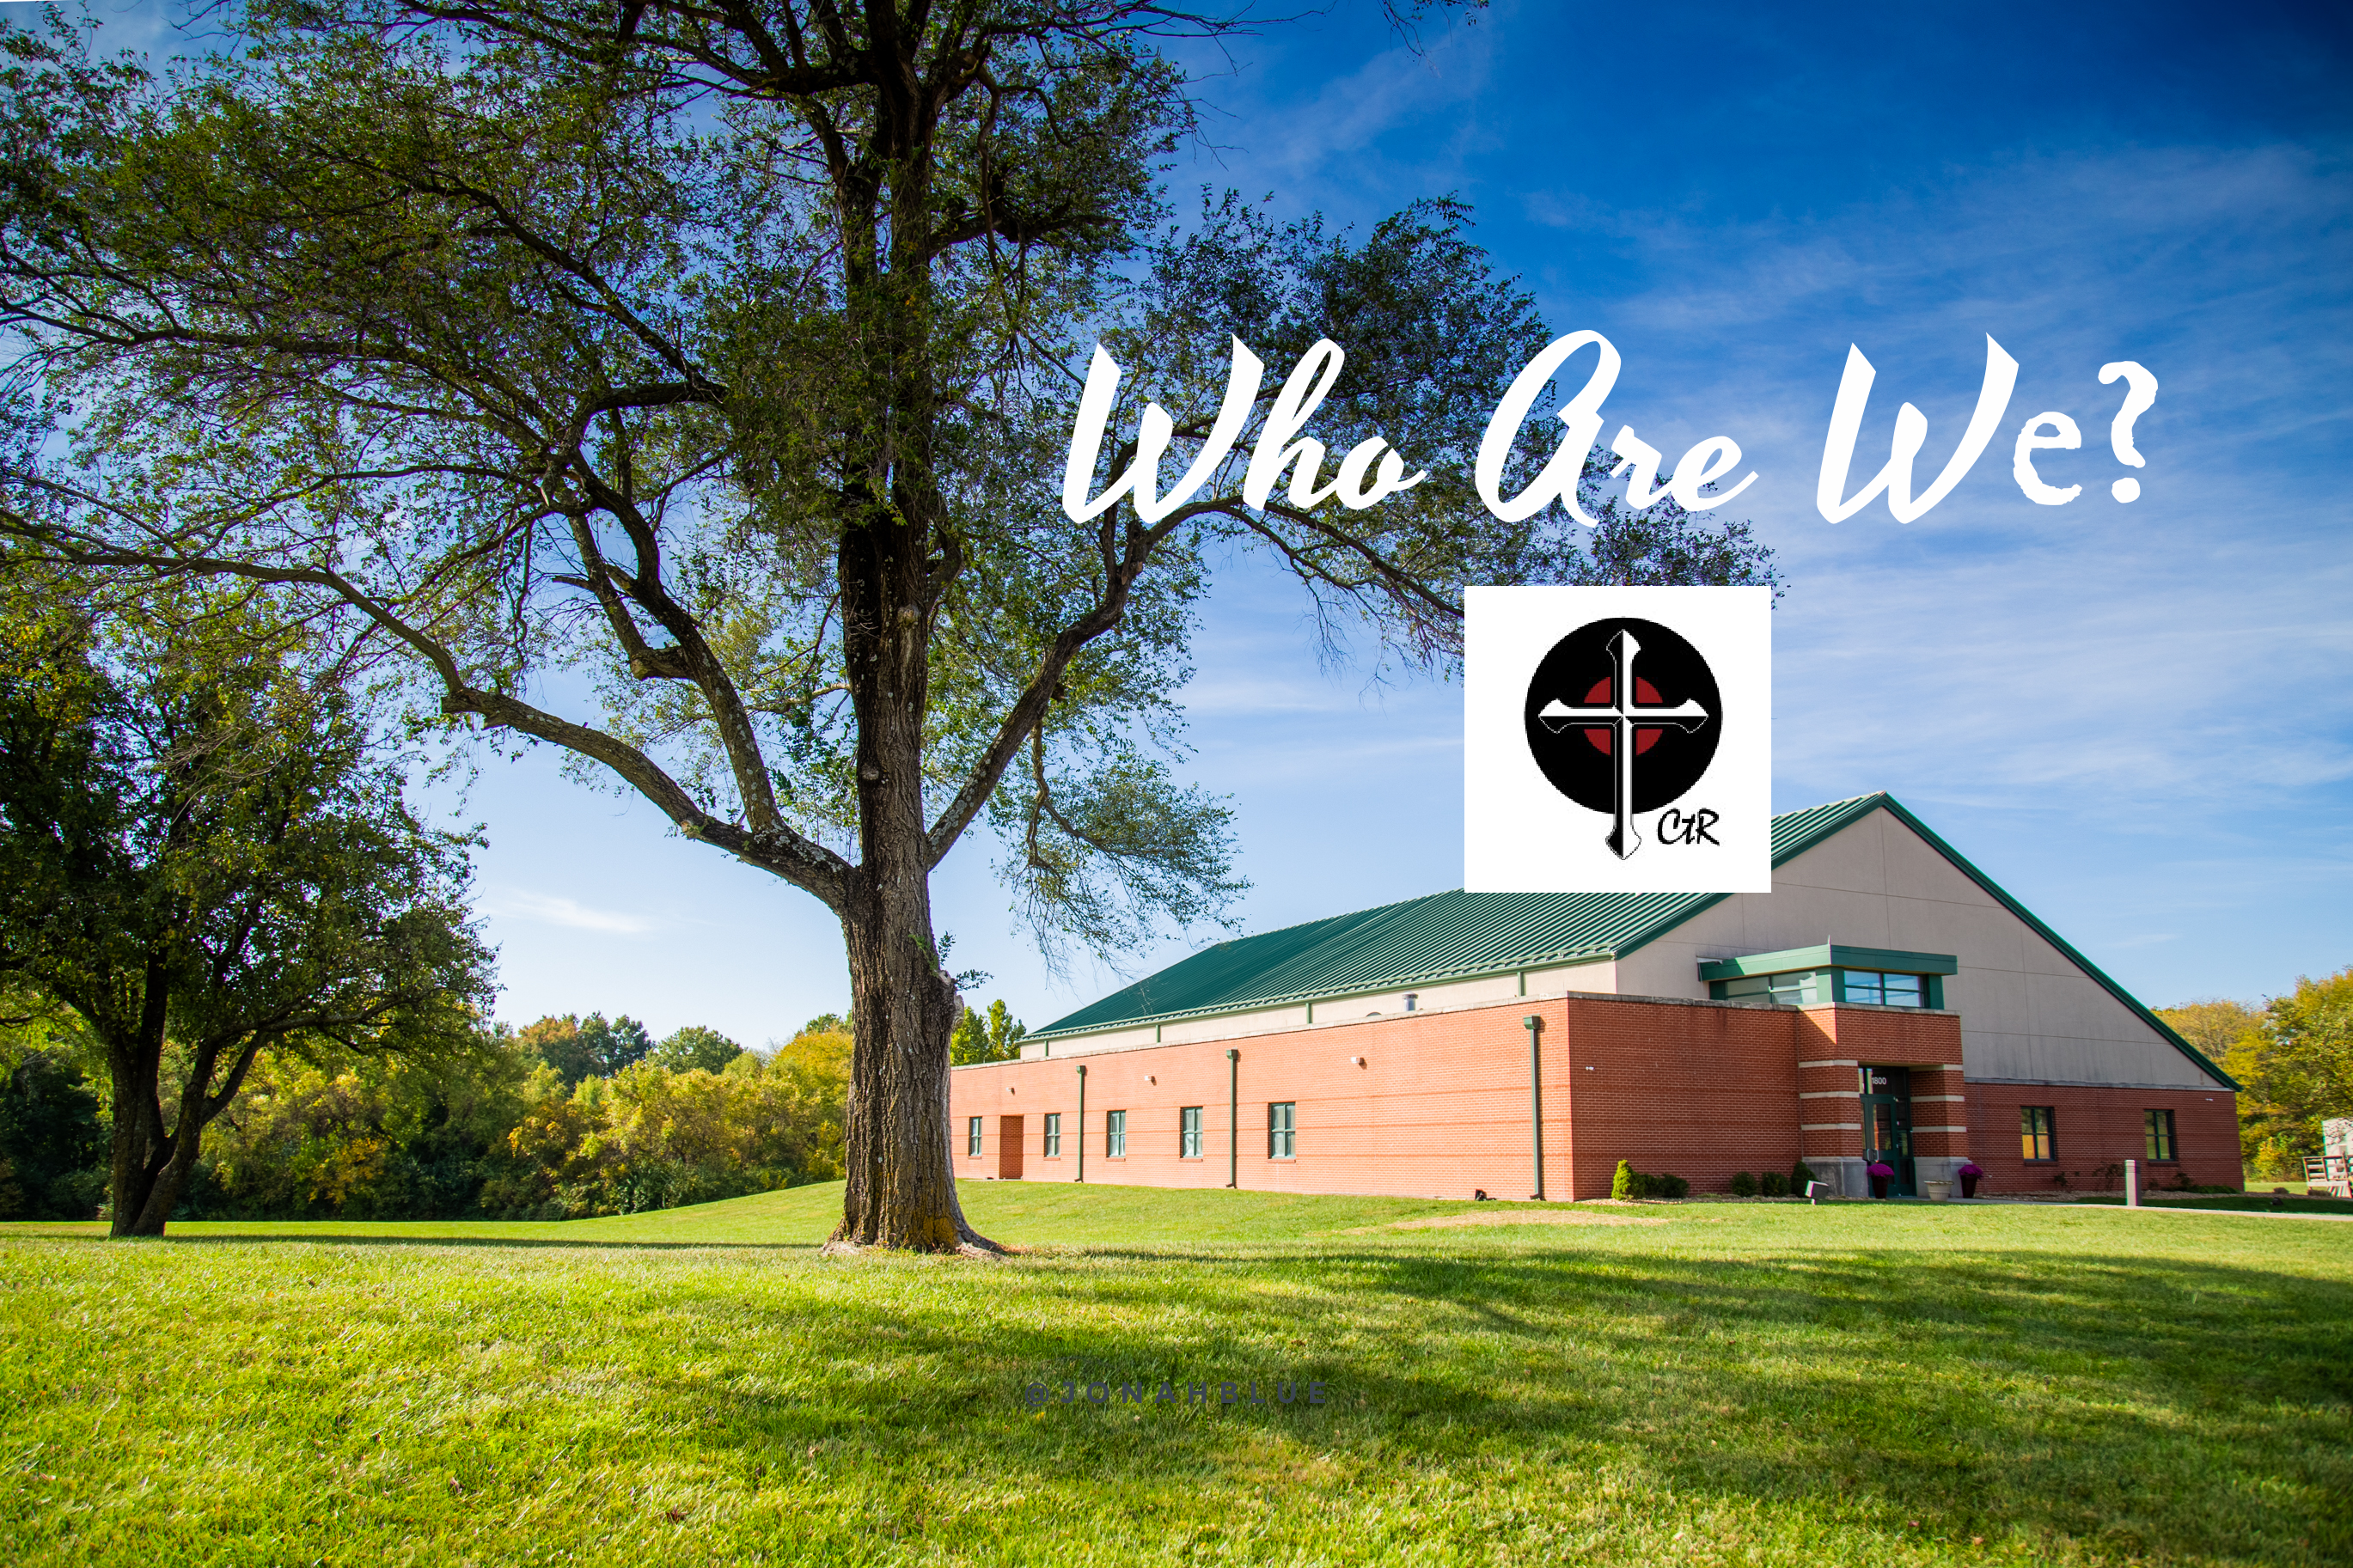 who are we - Sunday School image